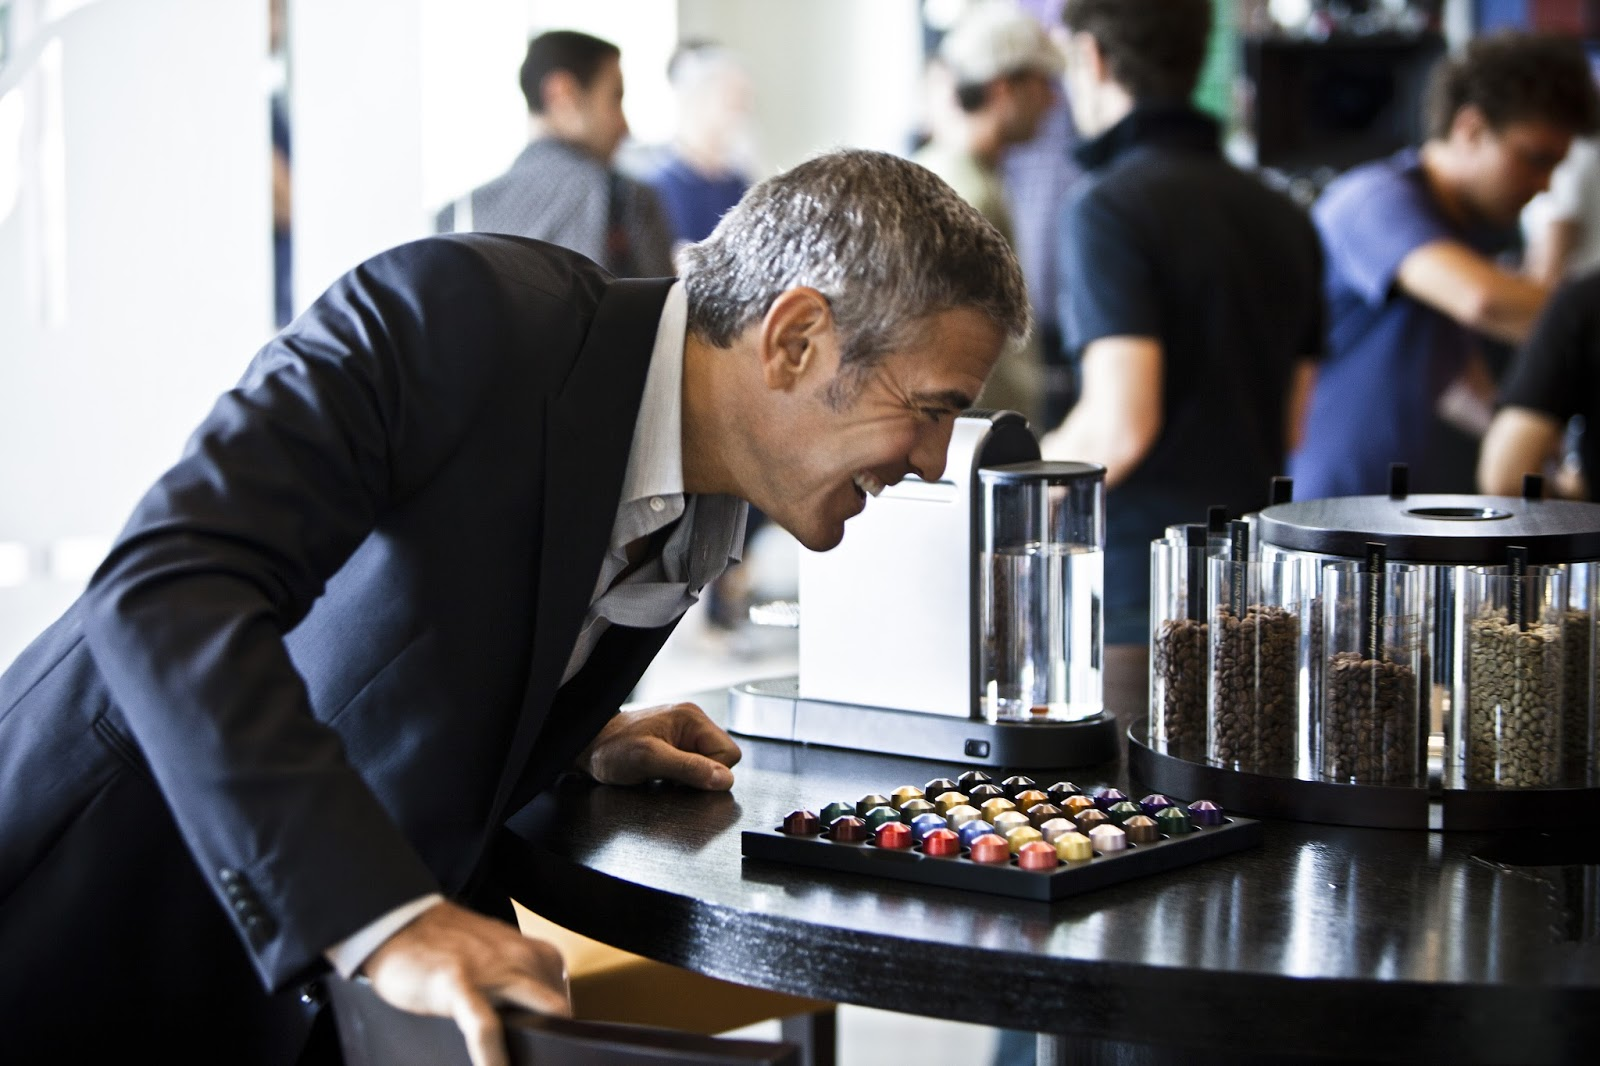 Electronic Coffee Machines George Clooney george clooney coffee machine